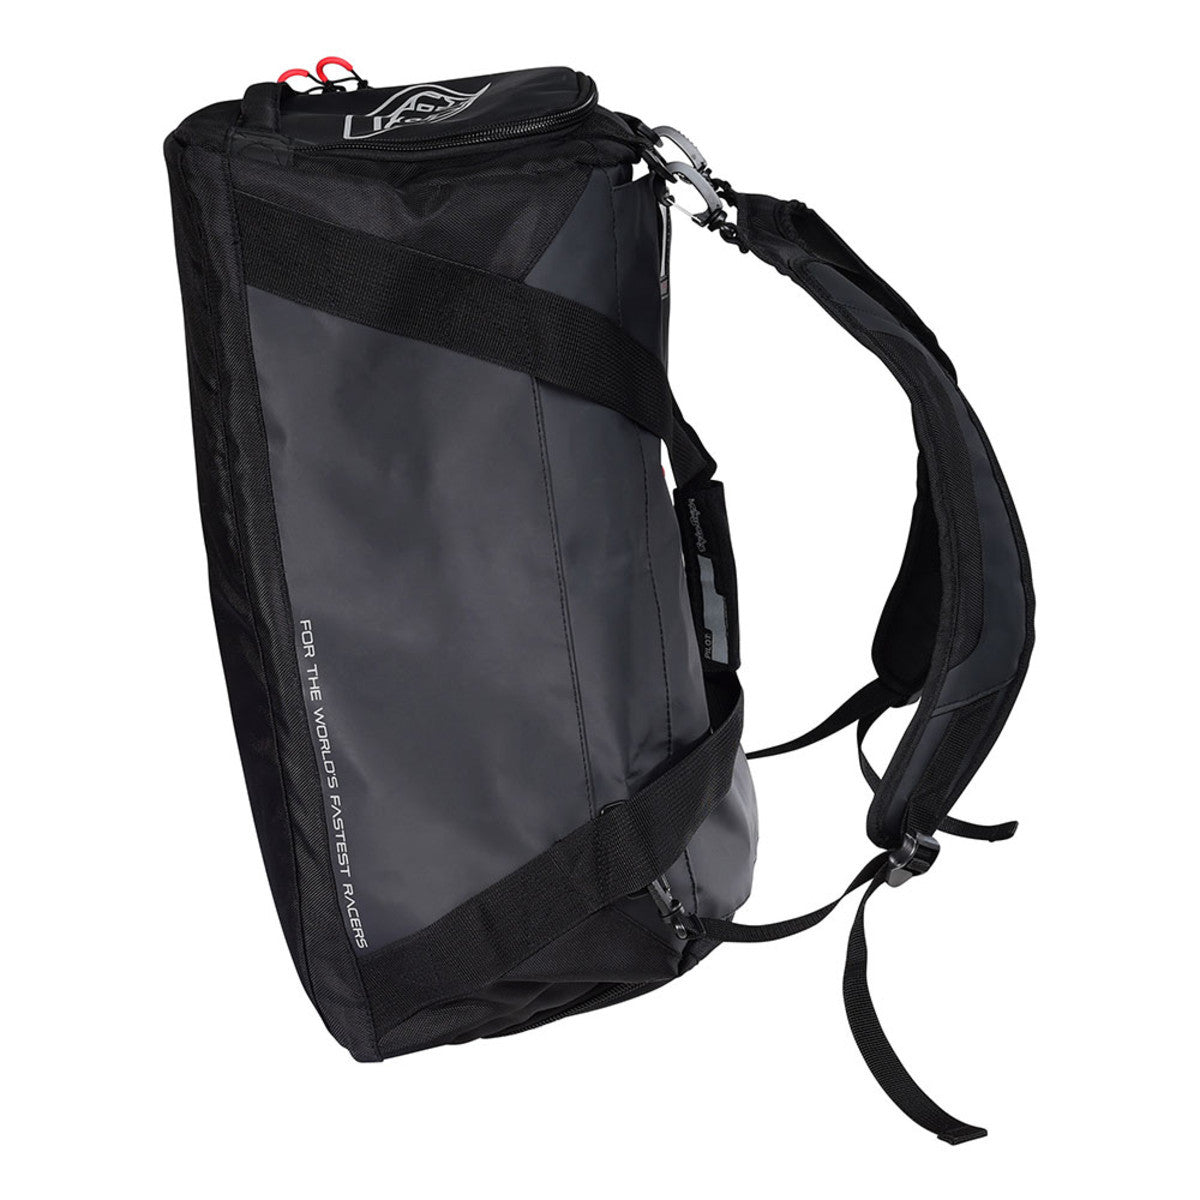 Transfer Gear Bag- Black by Troy Lee Designs